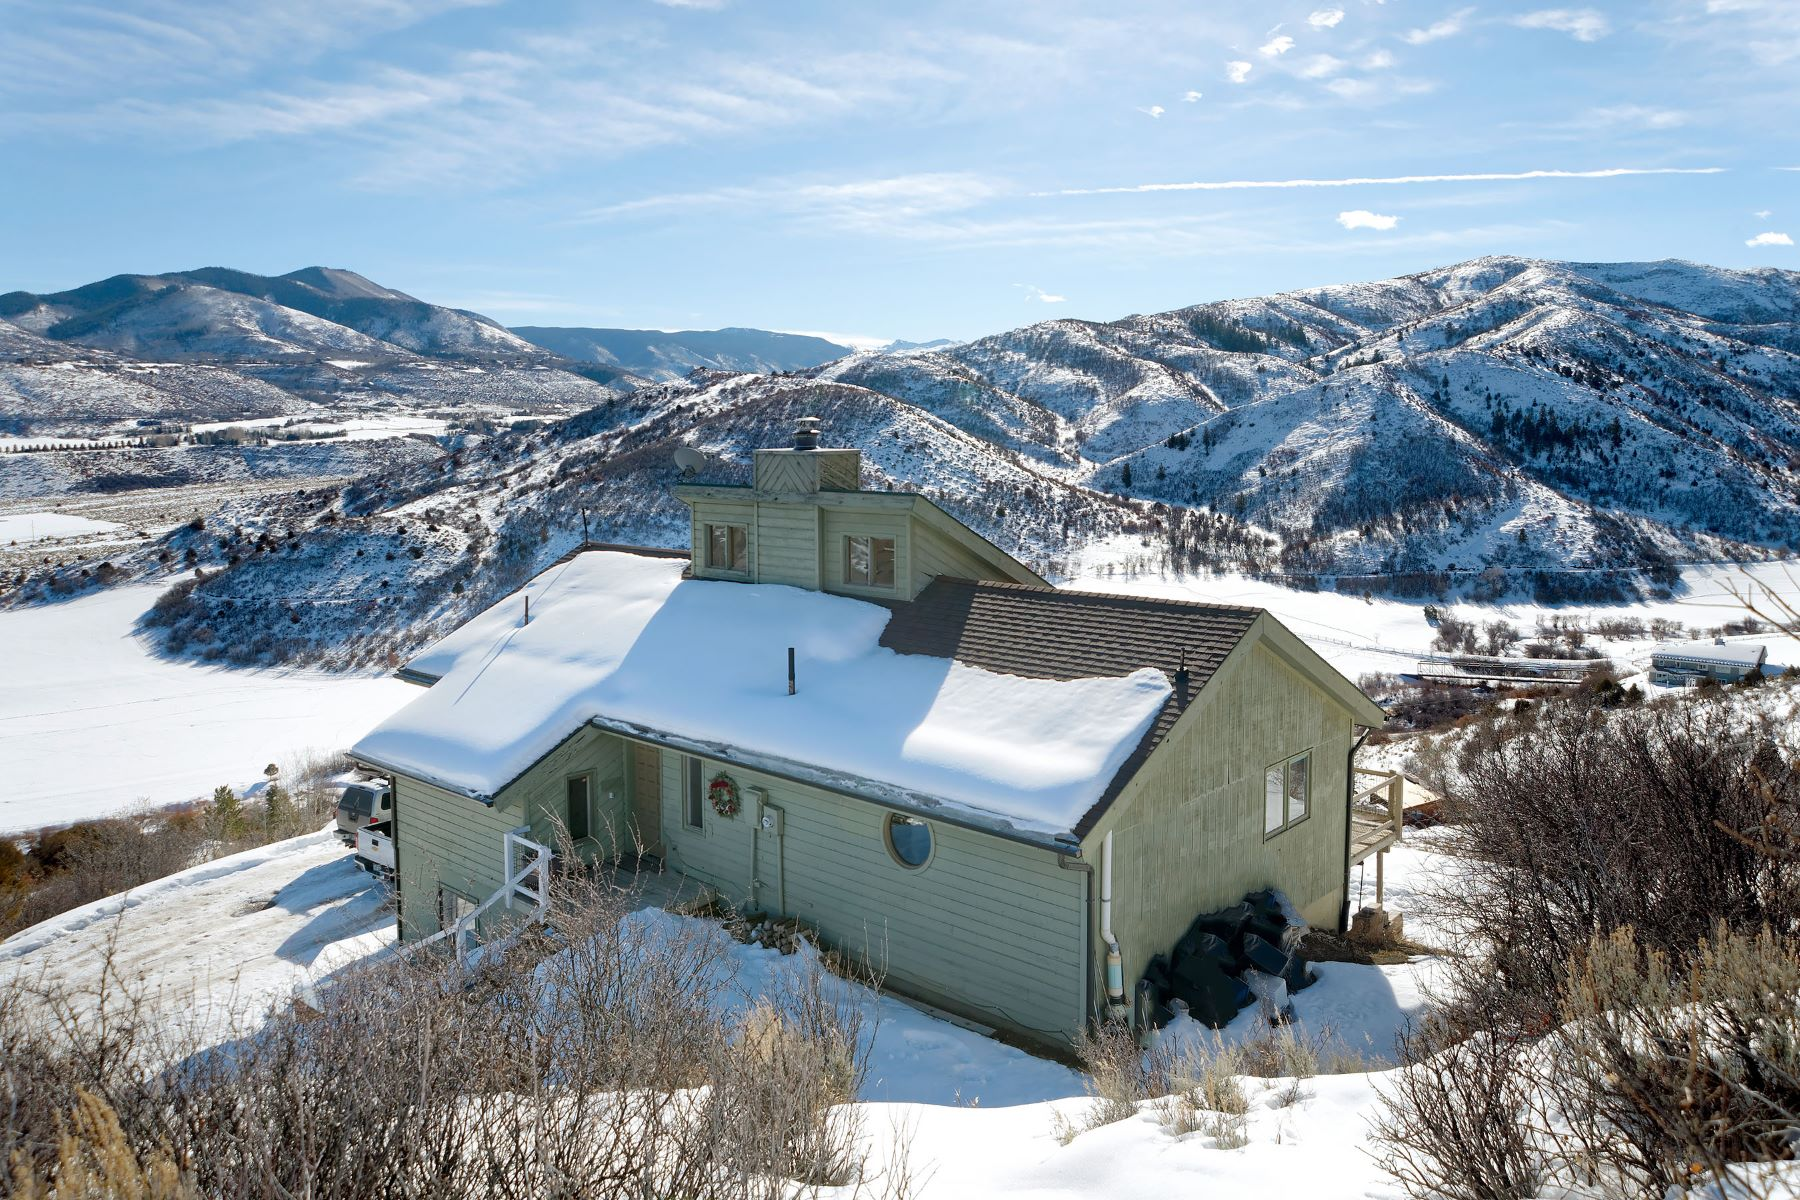 Casa Unifamiliar por un Venta en Panoramic Elk Mountain Views from Lenado to Snowmass 91 Solar Way Aspen, Colorado, 81611 Estados Unidos